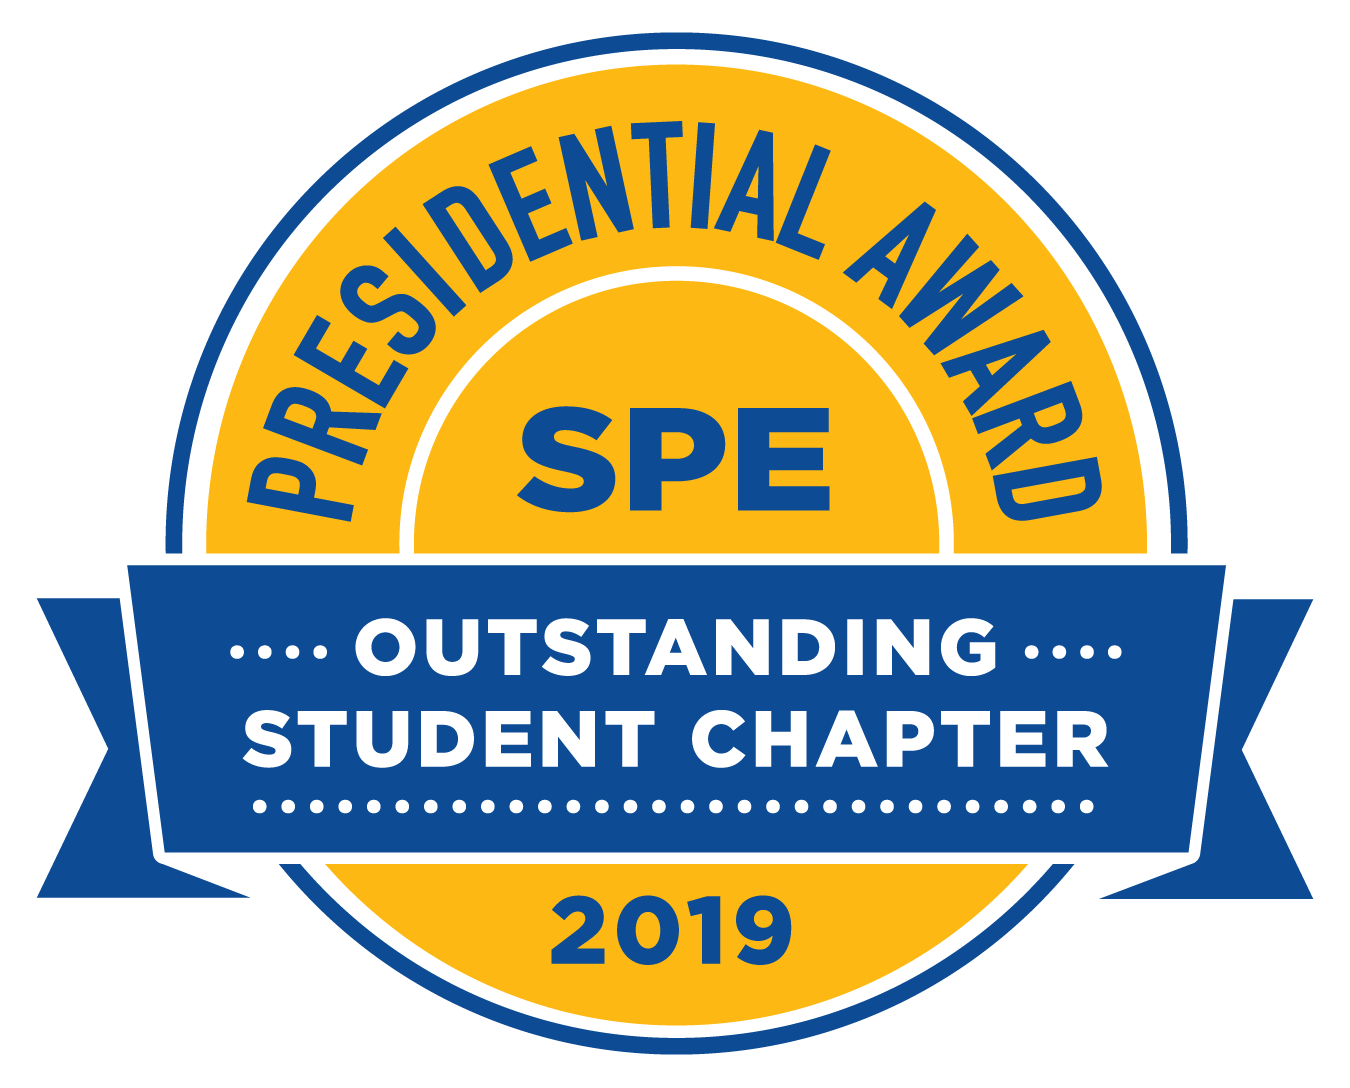 Presidential Award for Outstanding Student Chapter